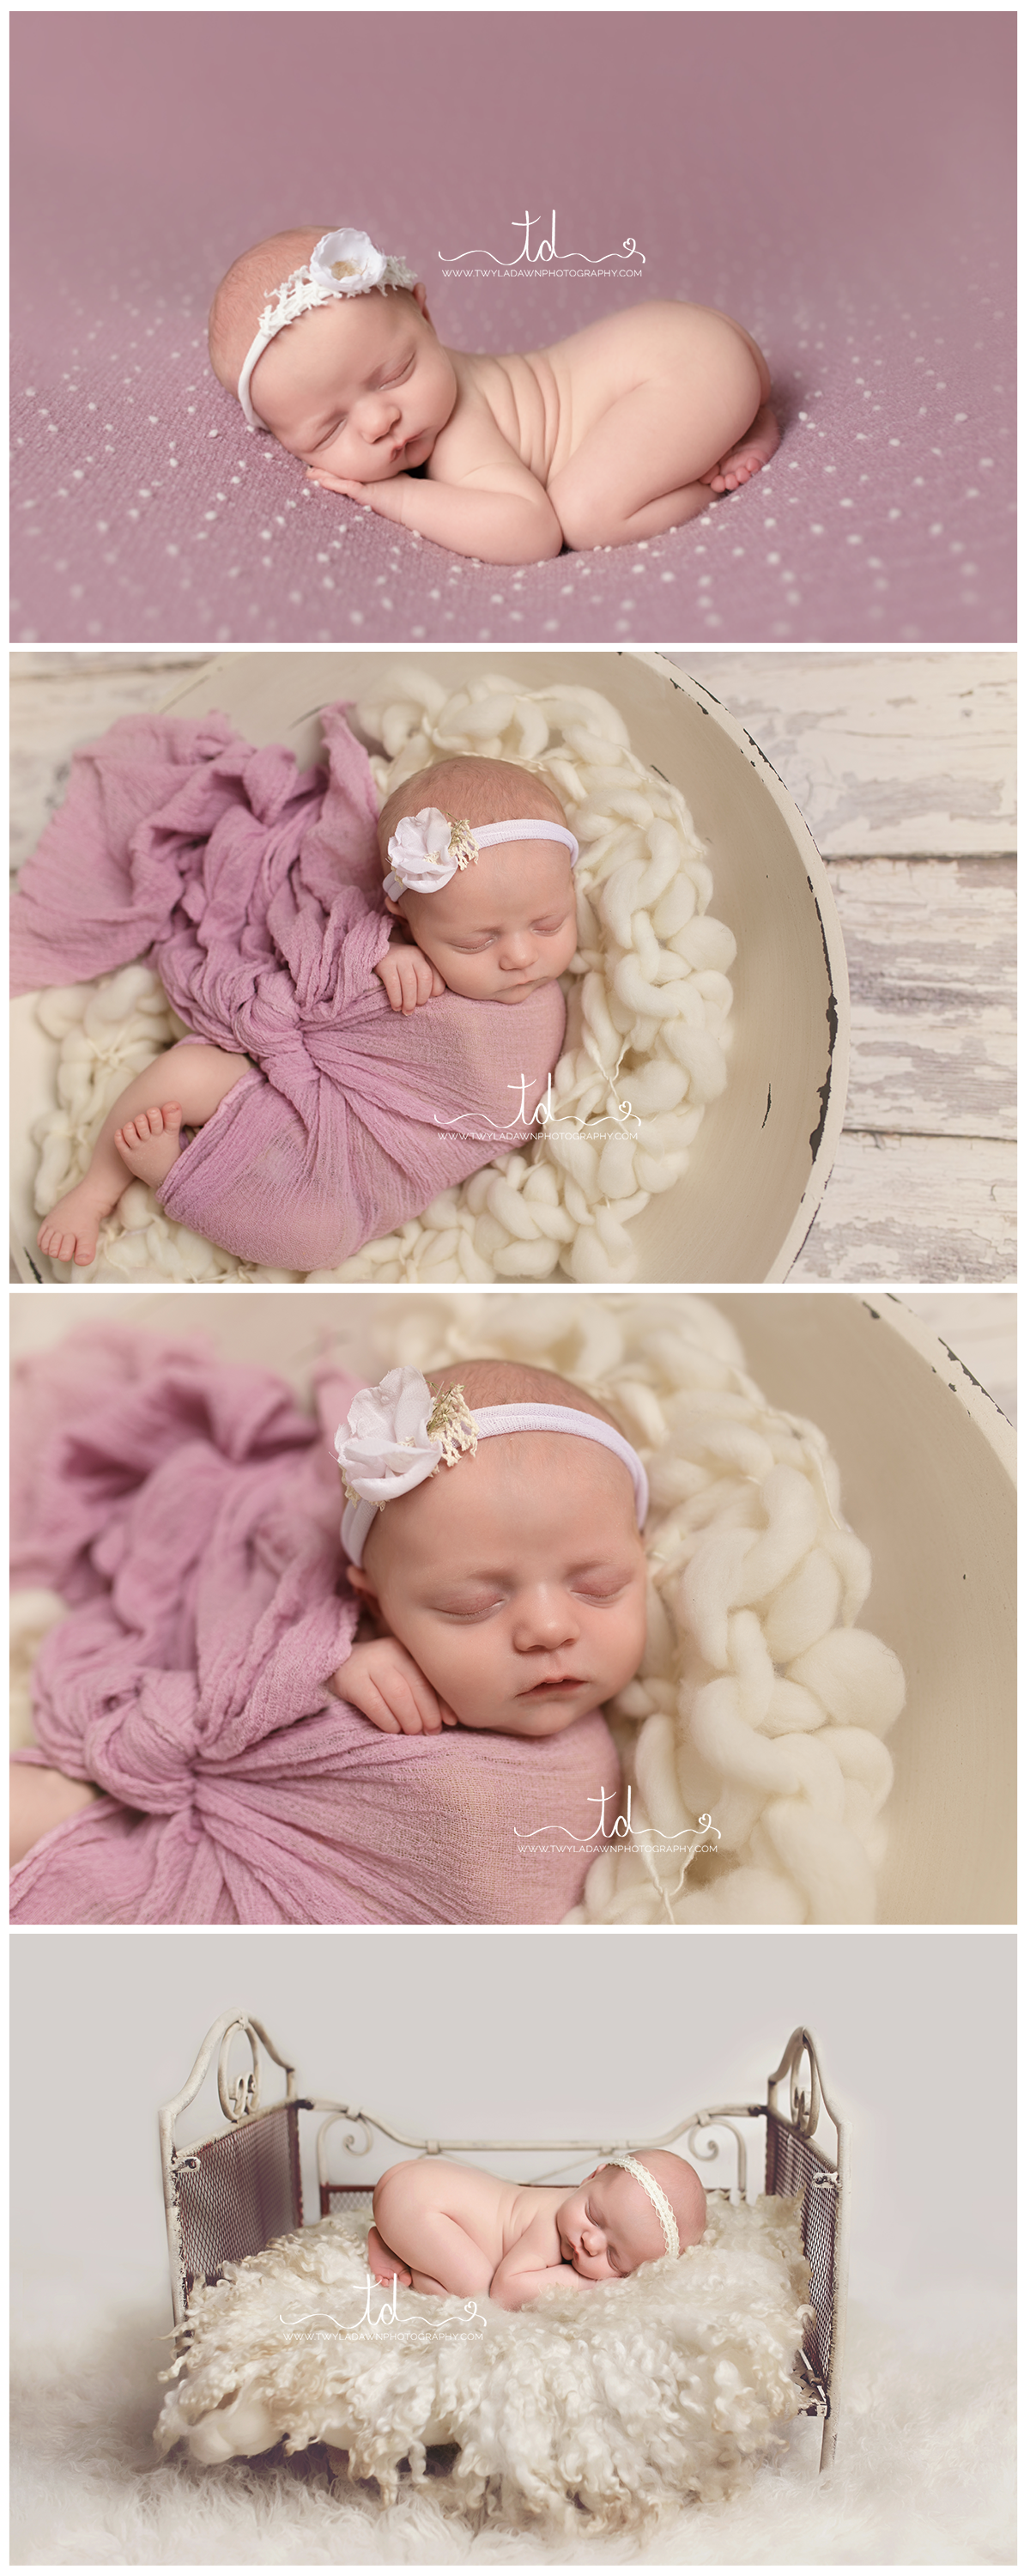 Heber - Park City, Utah Newborn Photographer | Baby Girl in lavender #twyladawnphotography